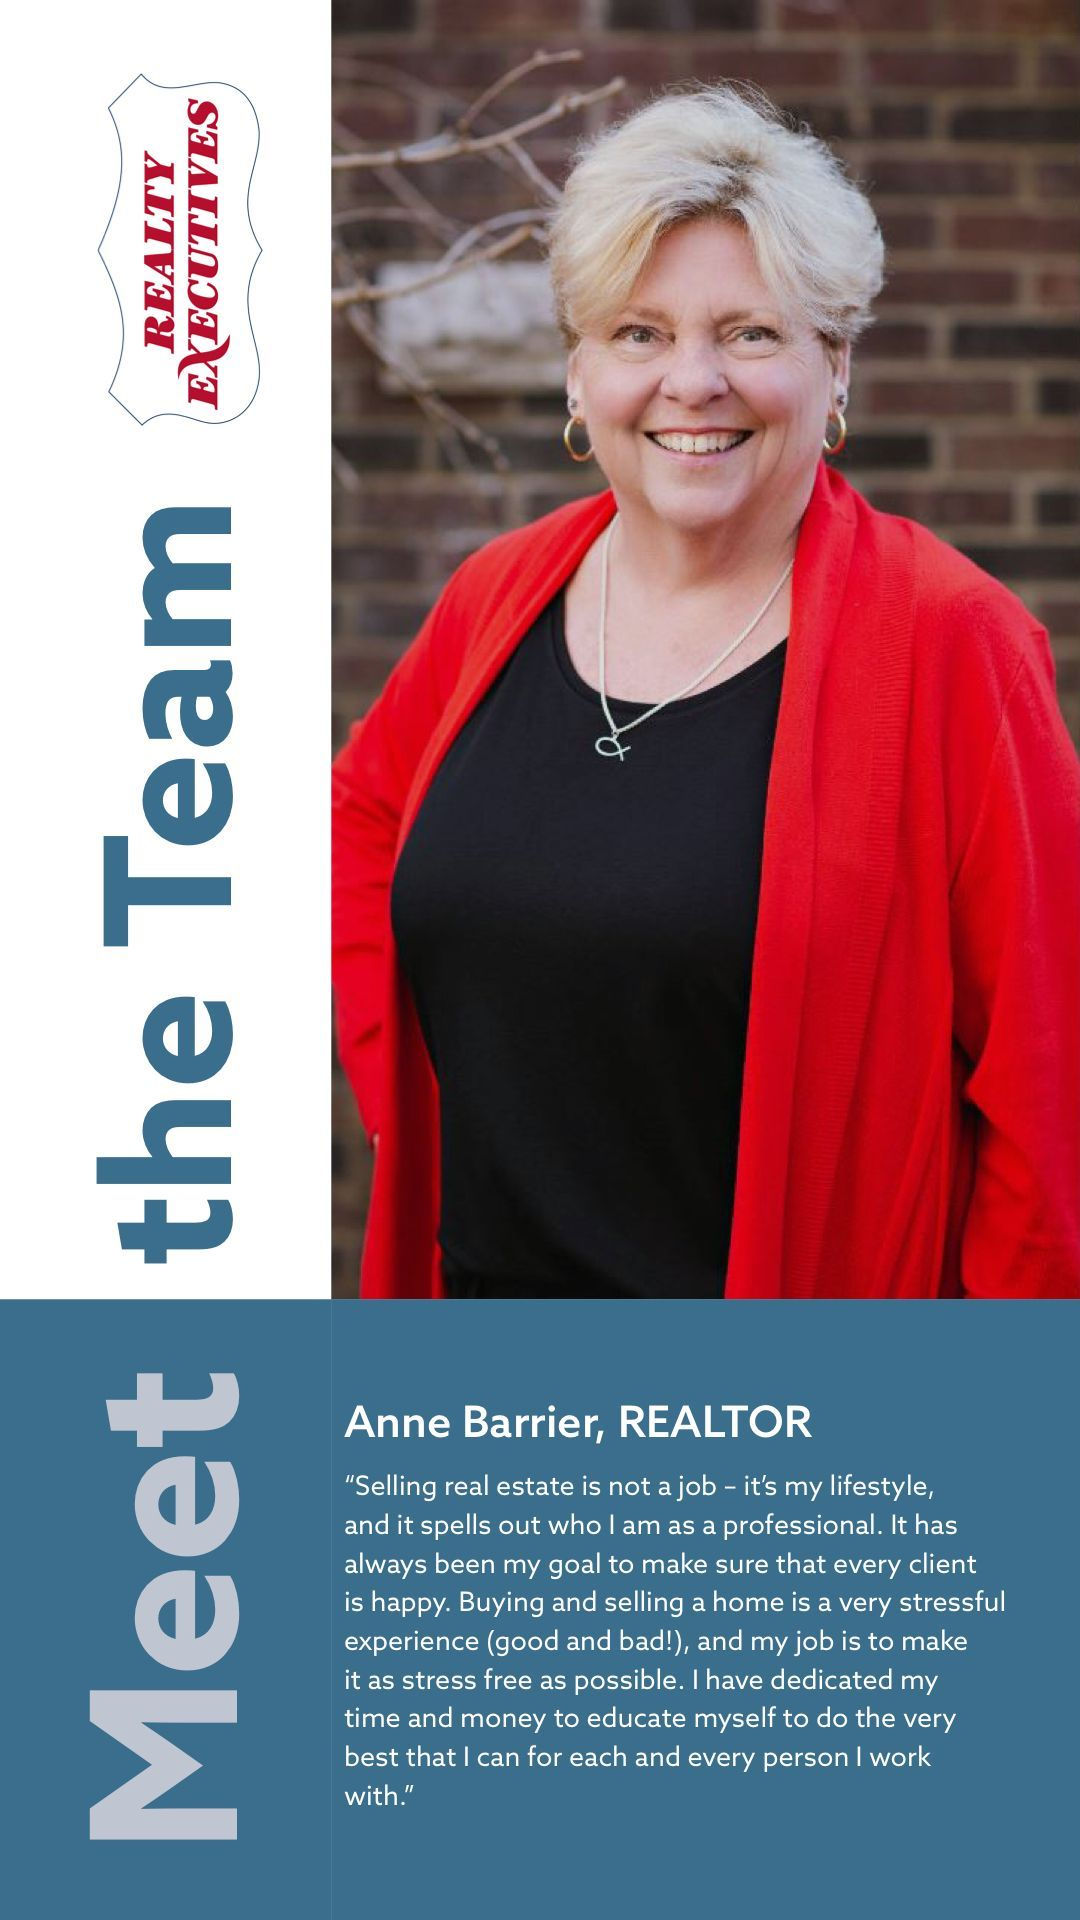 Today we'd like to introduce Anne Barrier, in the FIRST of